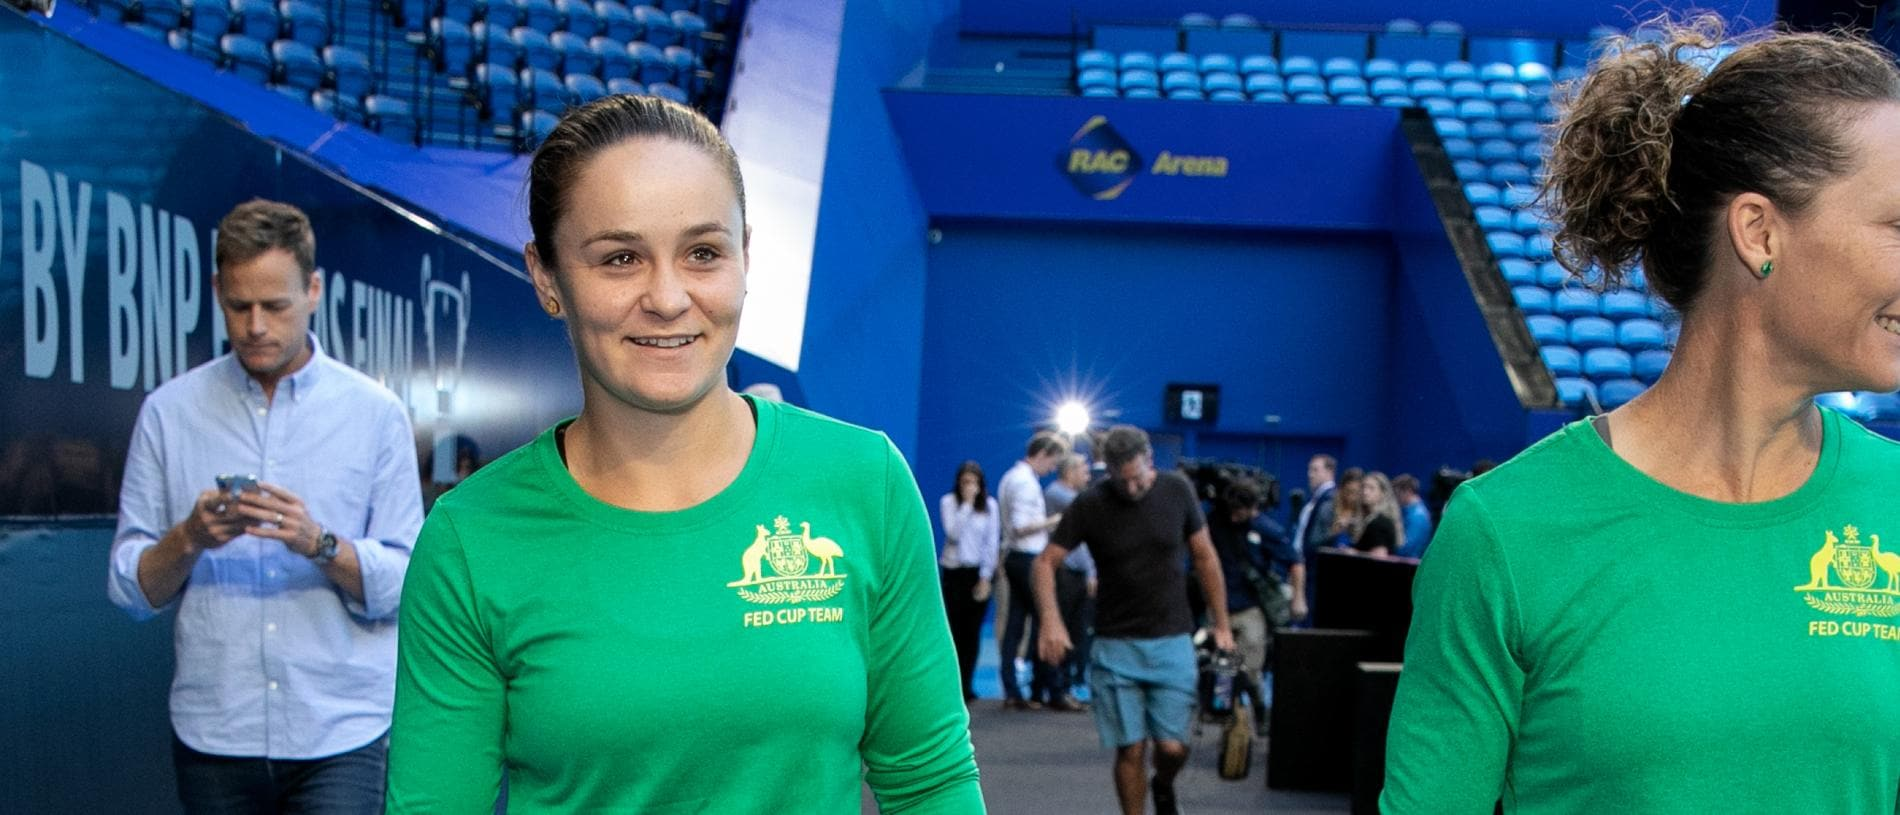 Tennis world No. 1 Ashleigh Barty (left) and Grand Slam champion Samantha Stosur before a media opportunity ahead of the 2019 Fed Cup at RAC Arena in Perth, Tuesday, November 5, 2019. (AAP Image/Fiona Hamilton) NO ARCHIVING